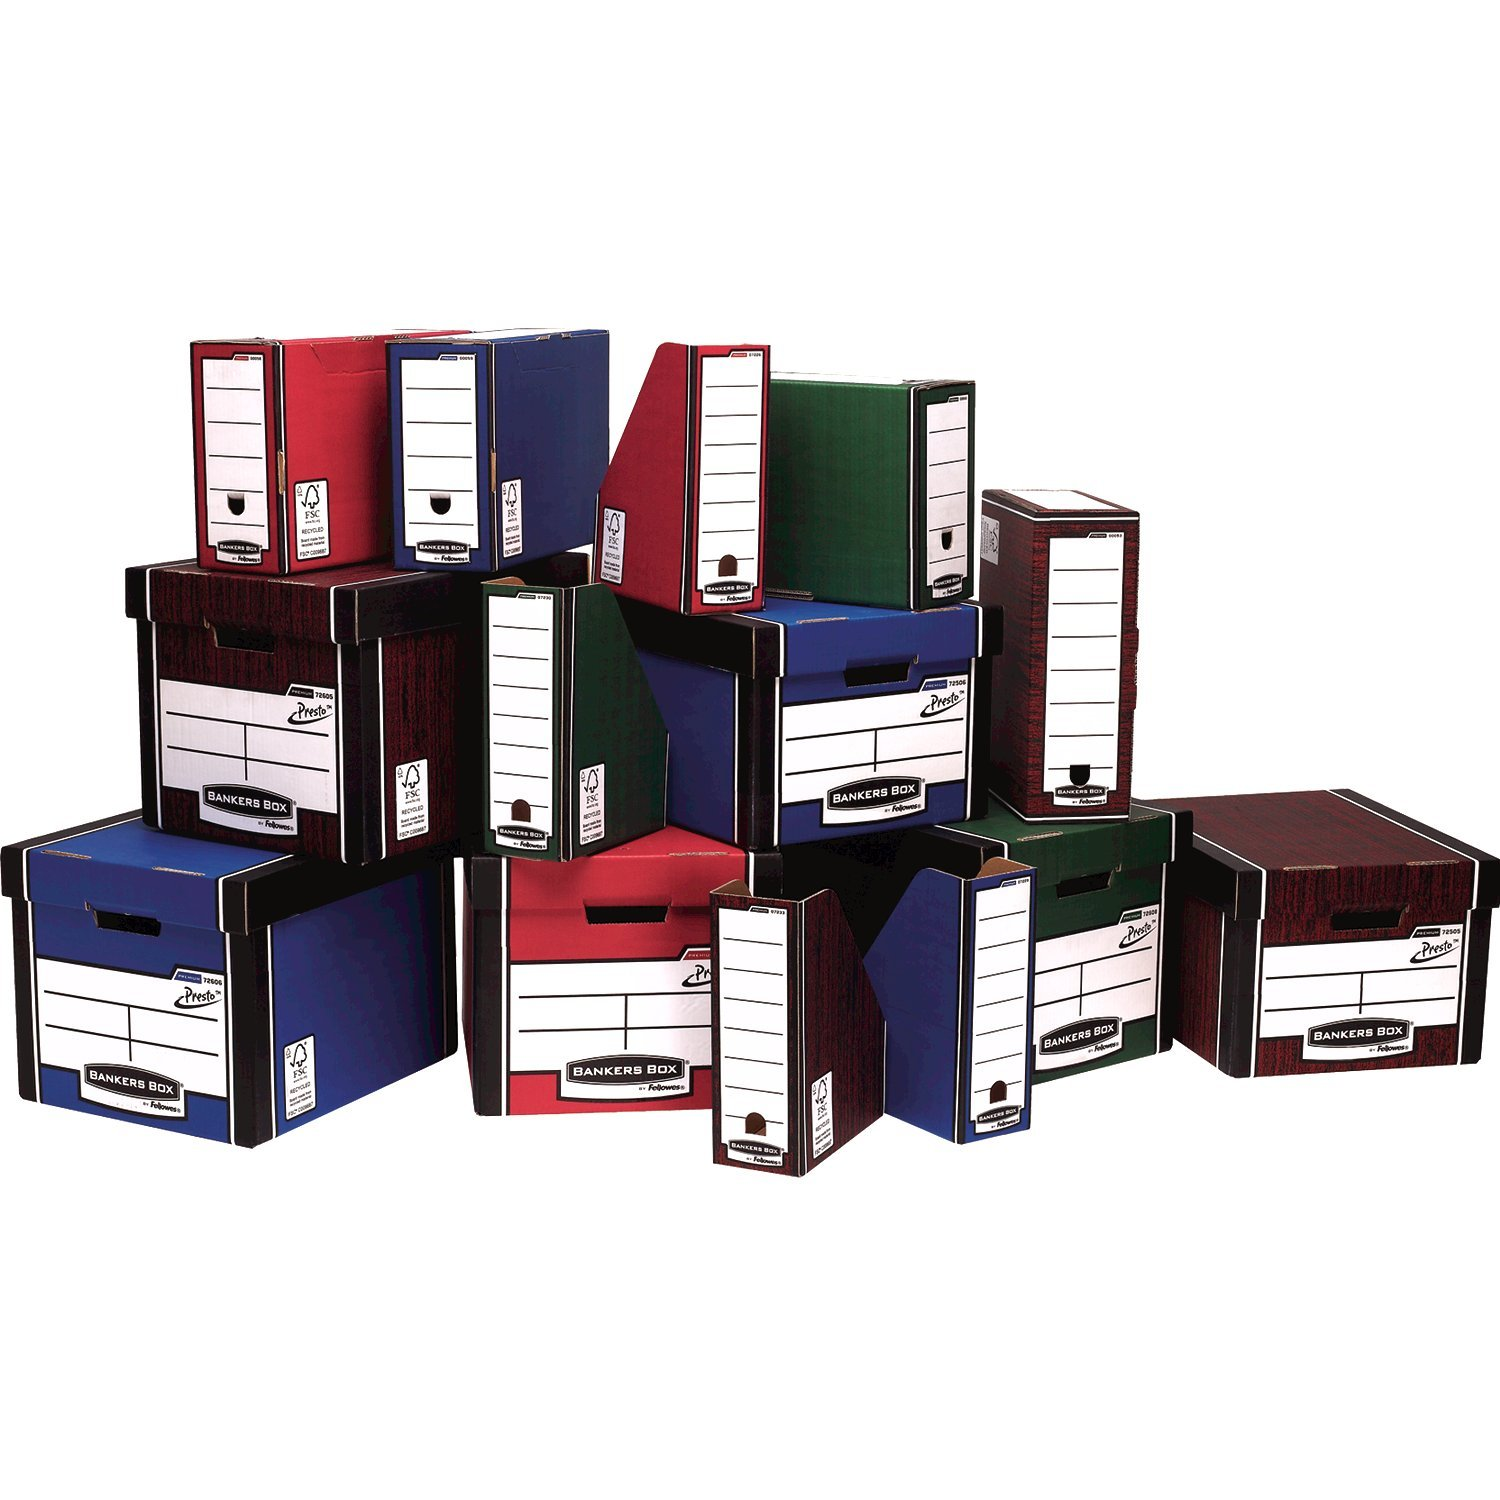 Bankers Box Red Presto Bankers Box Premium Storage Boxes Pack of 10 72607 NEW